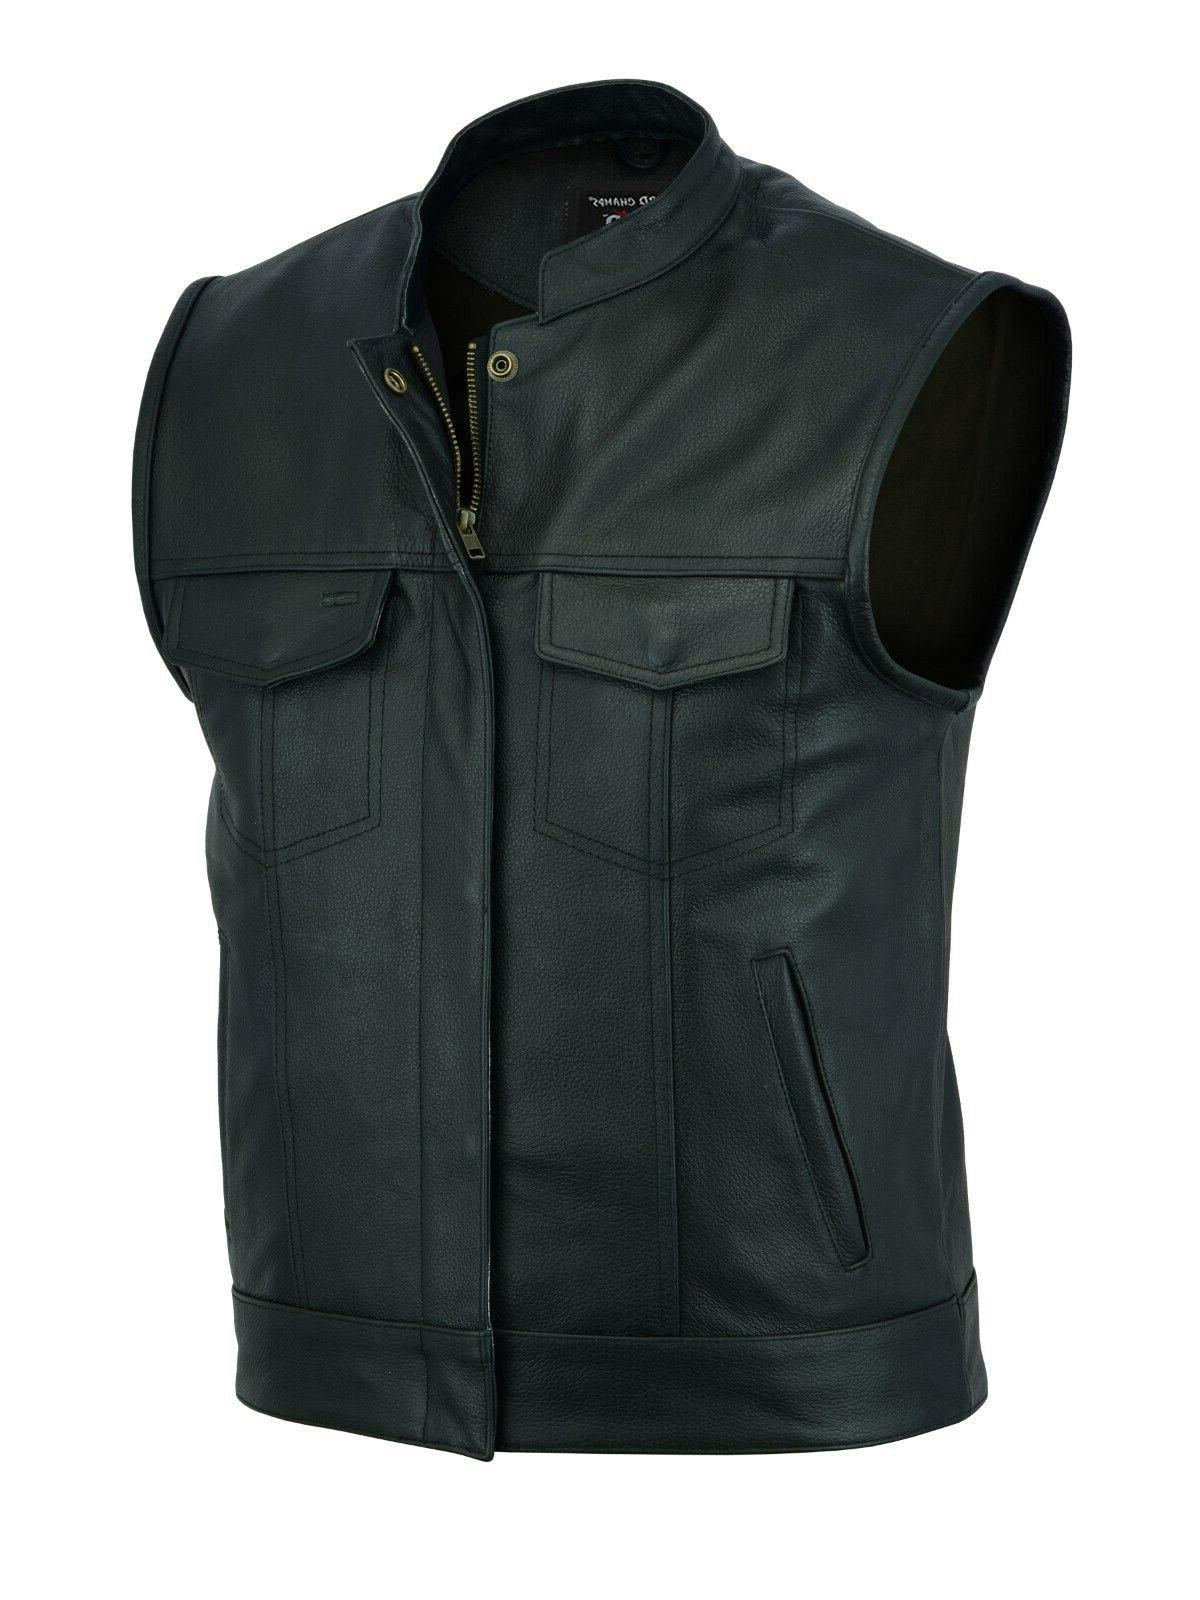 2fit soa men s leather vest anarchy